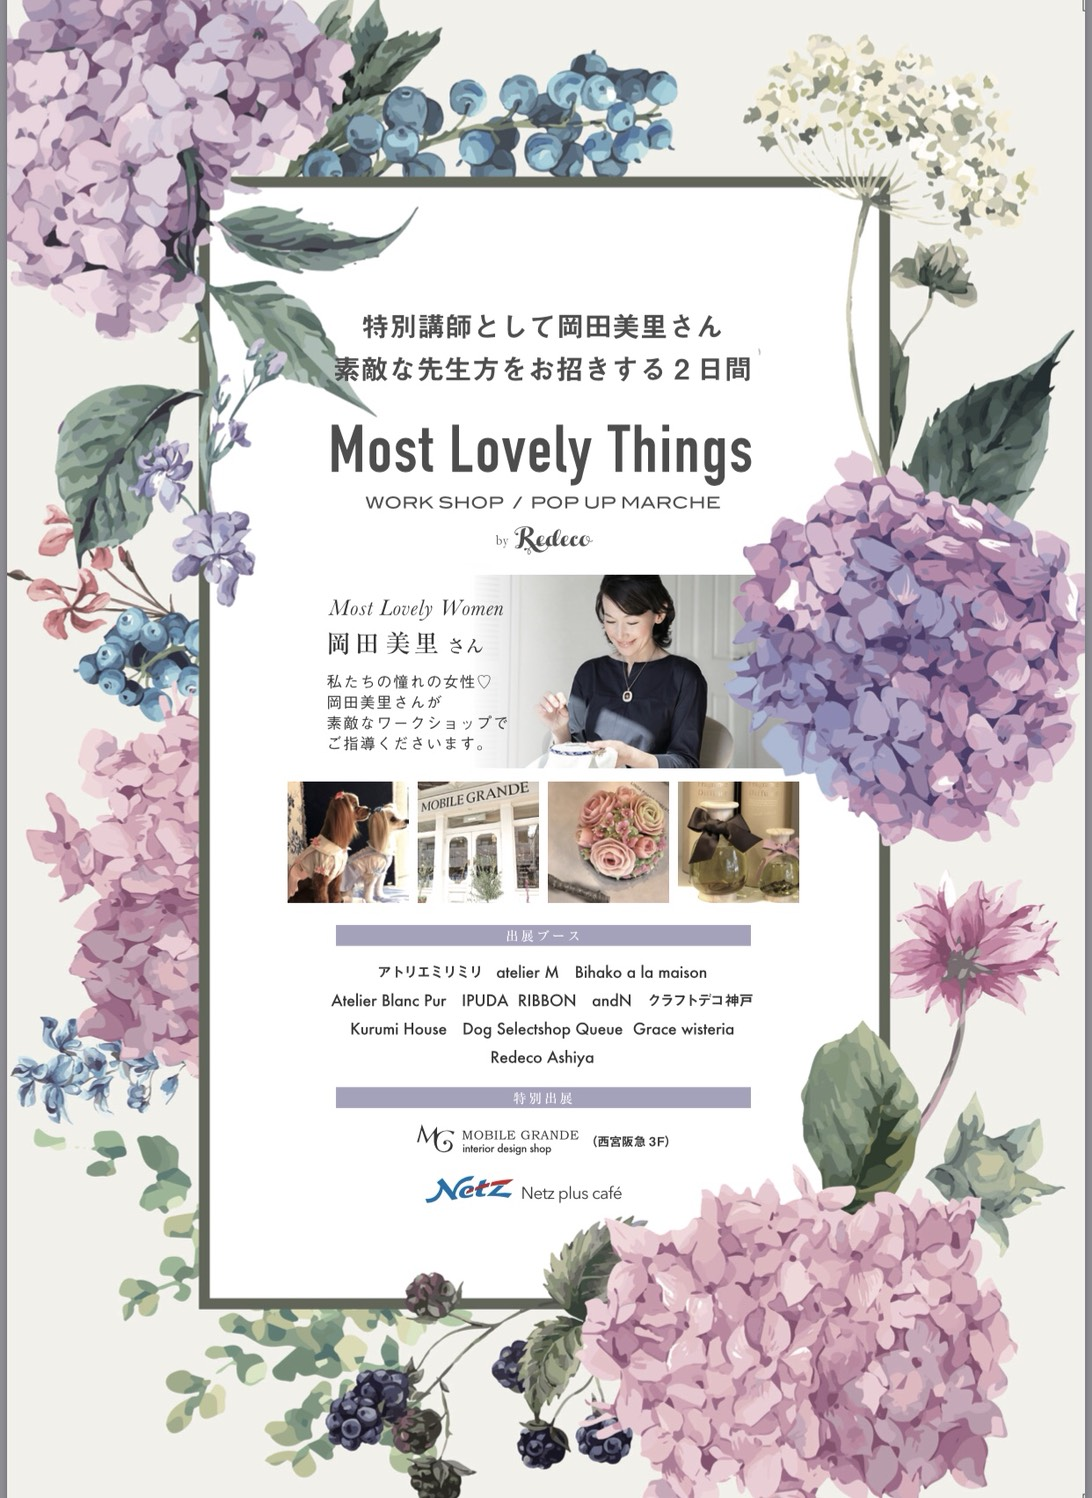 Most Lovely Things 2018 岡田美里